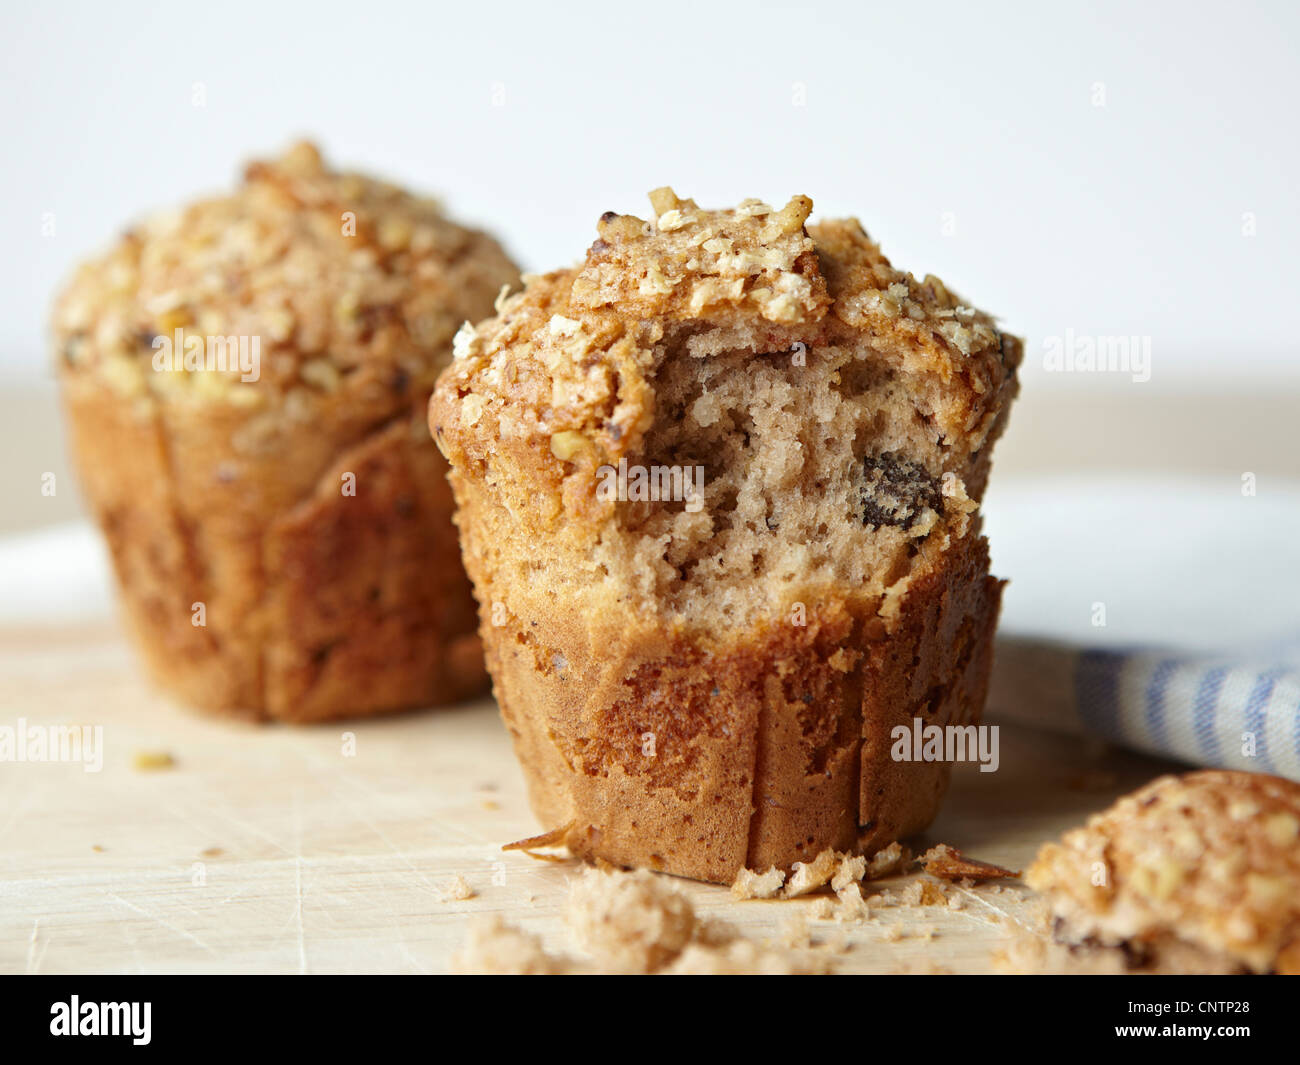 Muffin with bite taken out - Stock Image